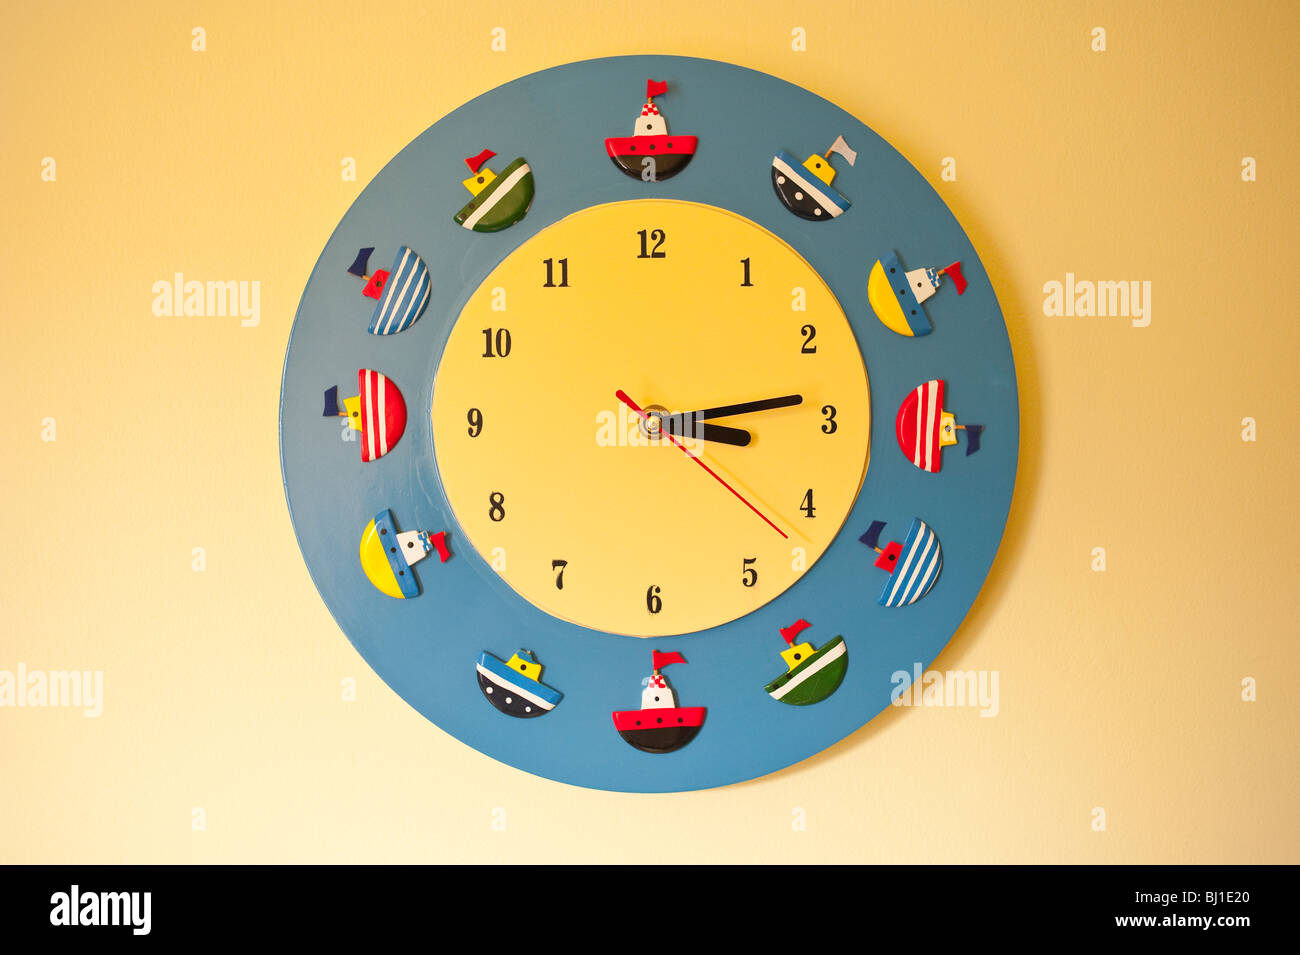 A childs nautical scene wall clock - Stock Image